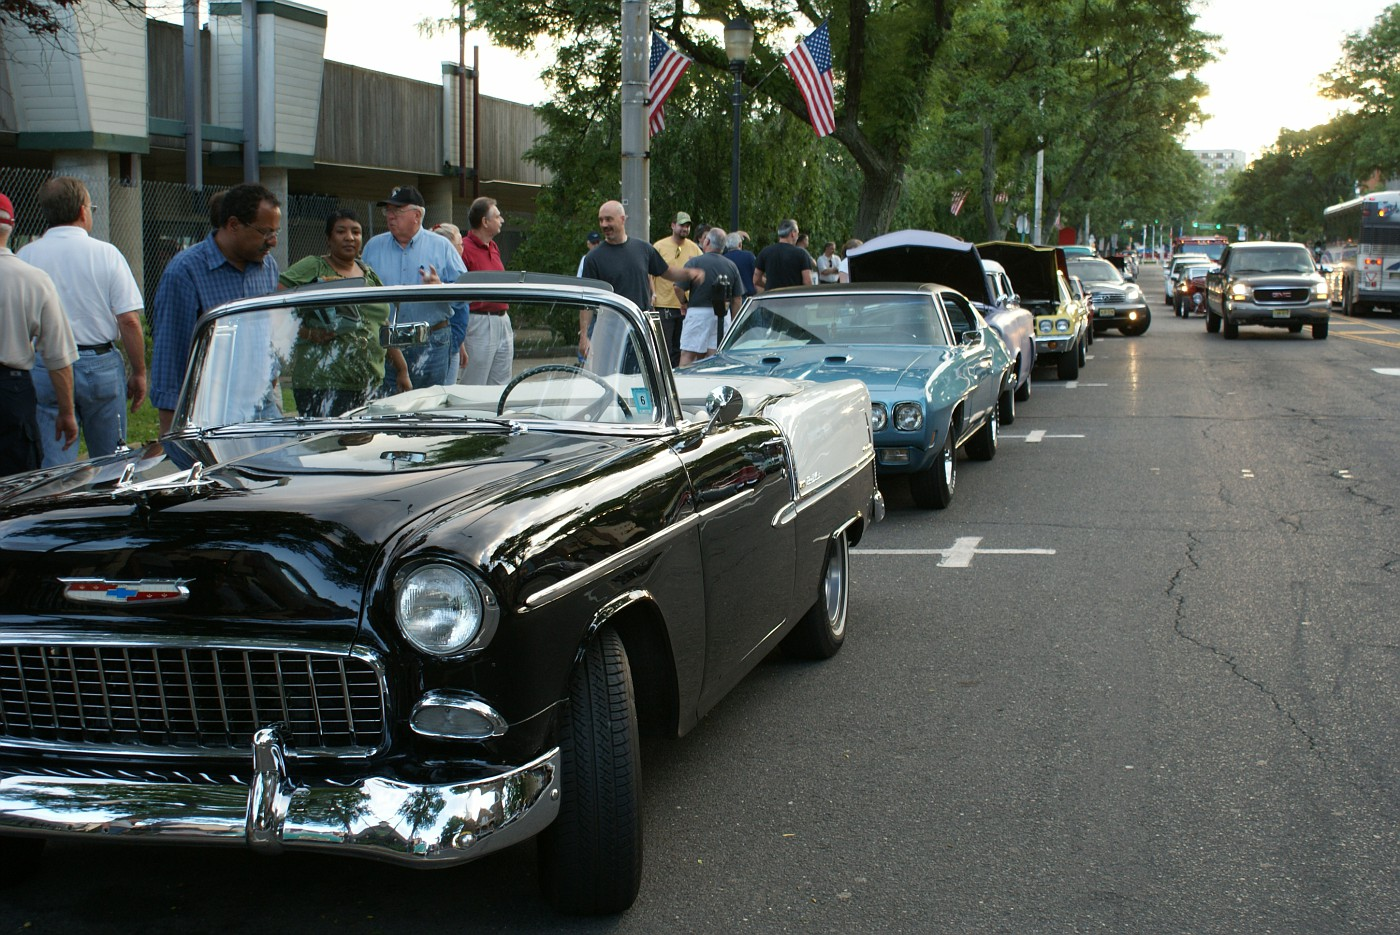 Somerville, NJ Cruise